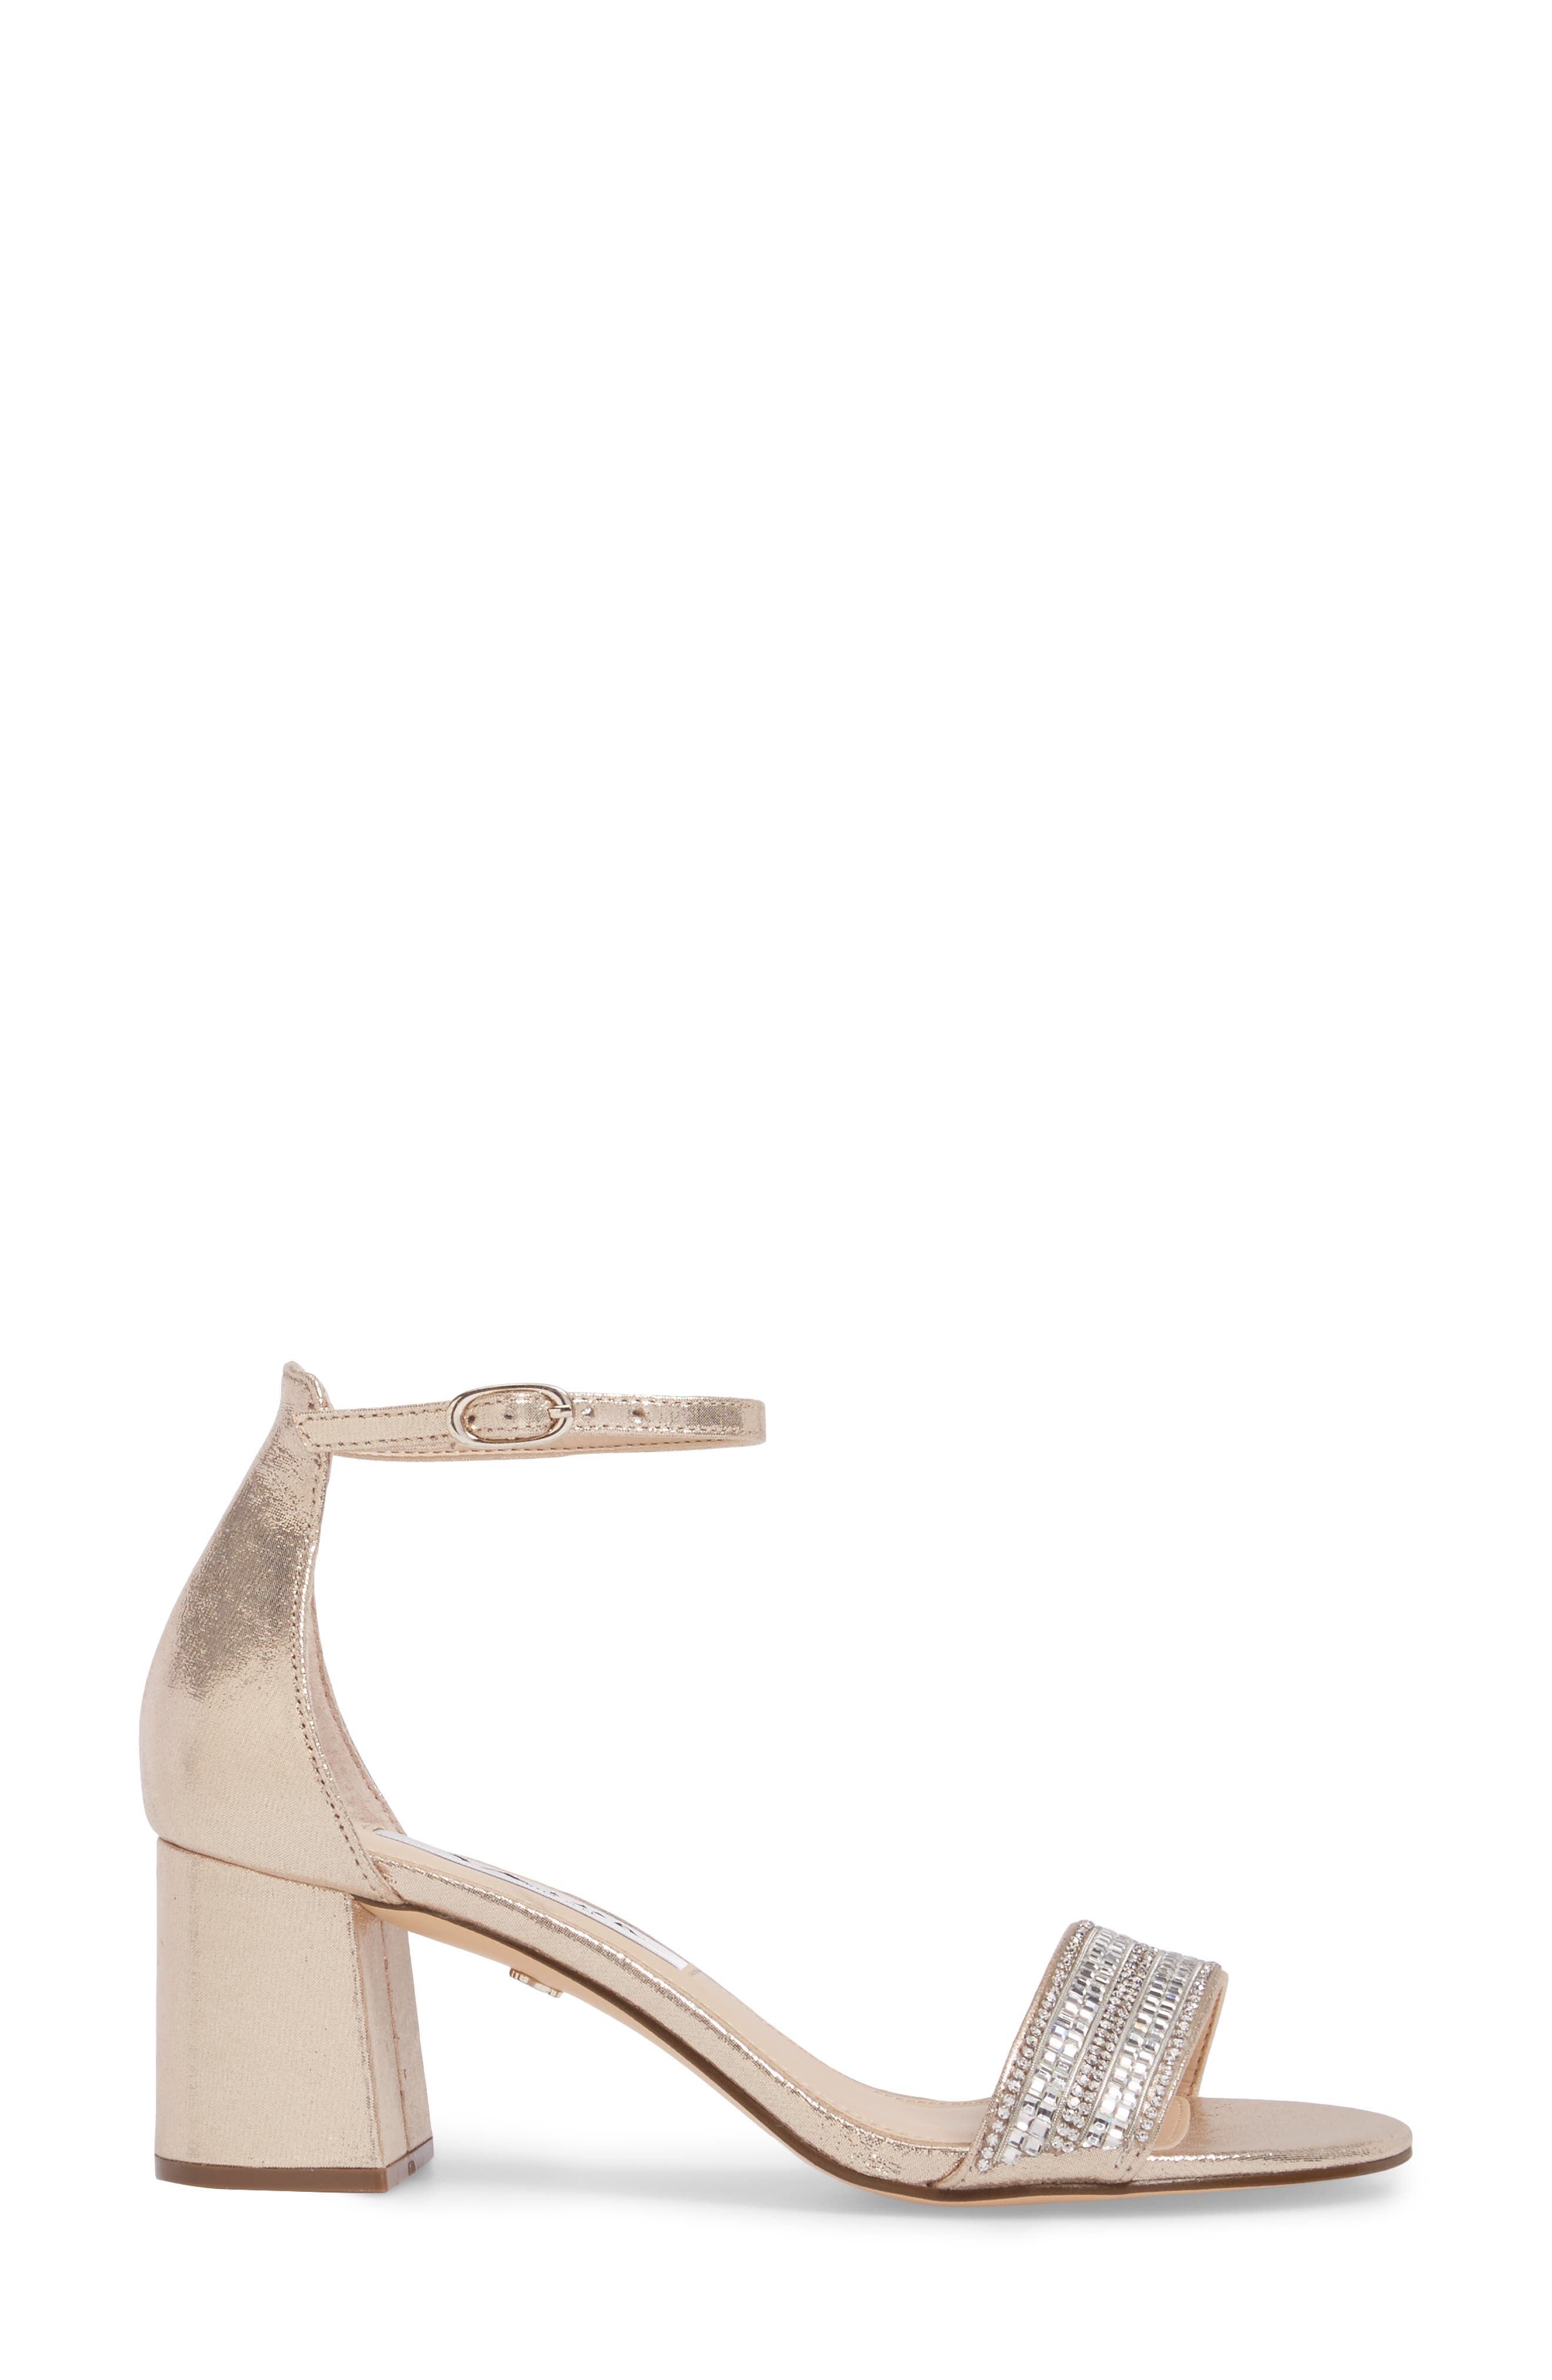 Elenora Sandal,                             Alternate thumbnail 3, color,                             Taupe Suede